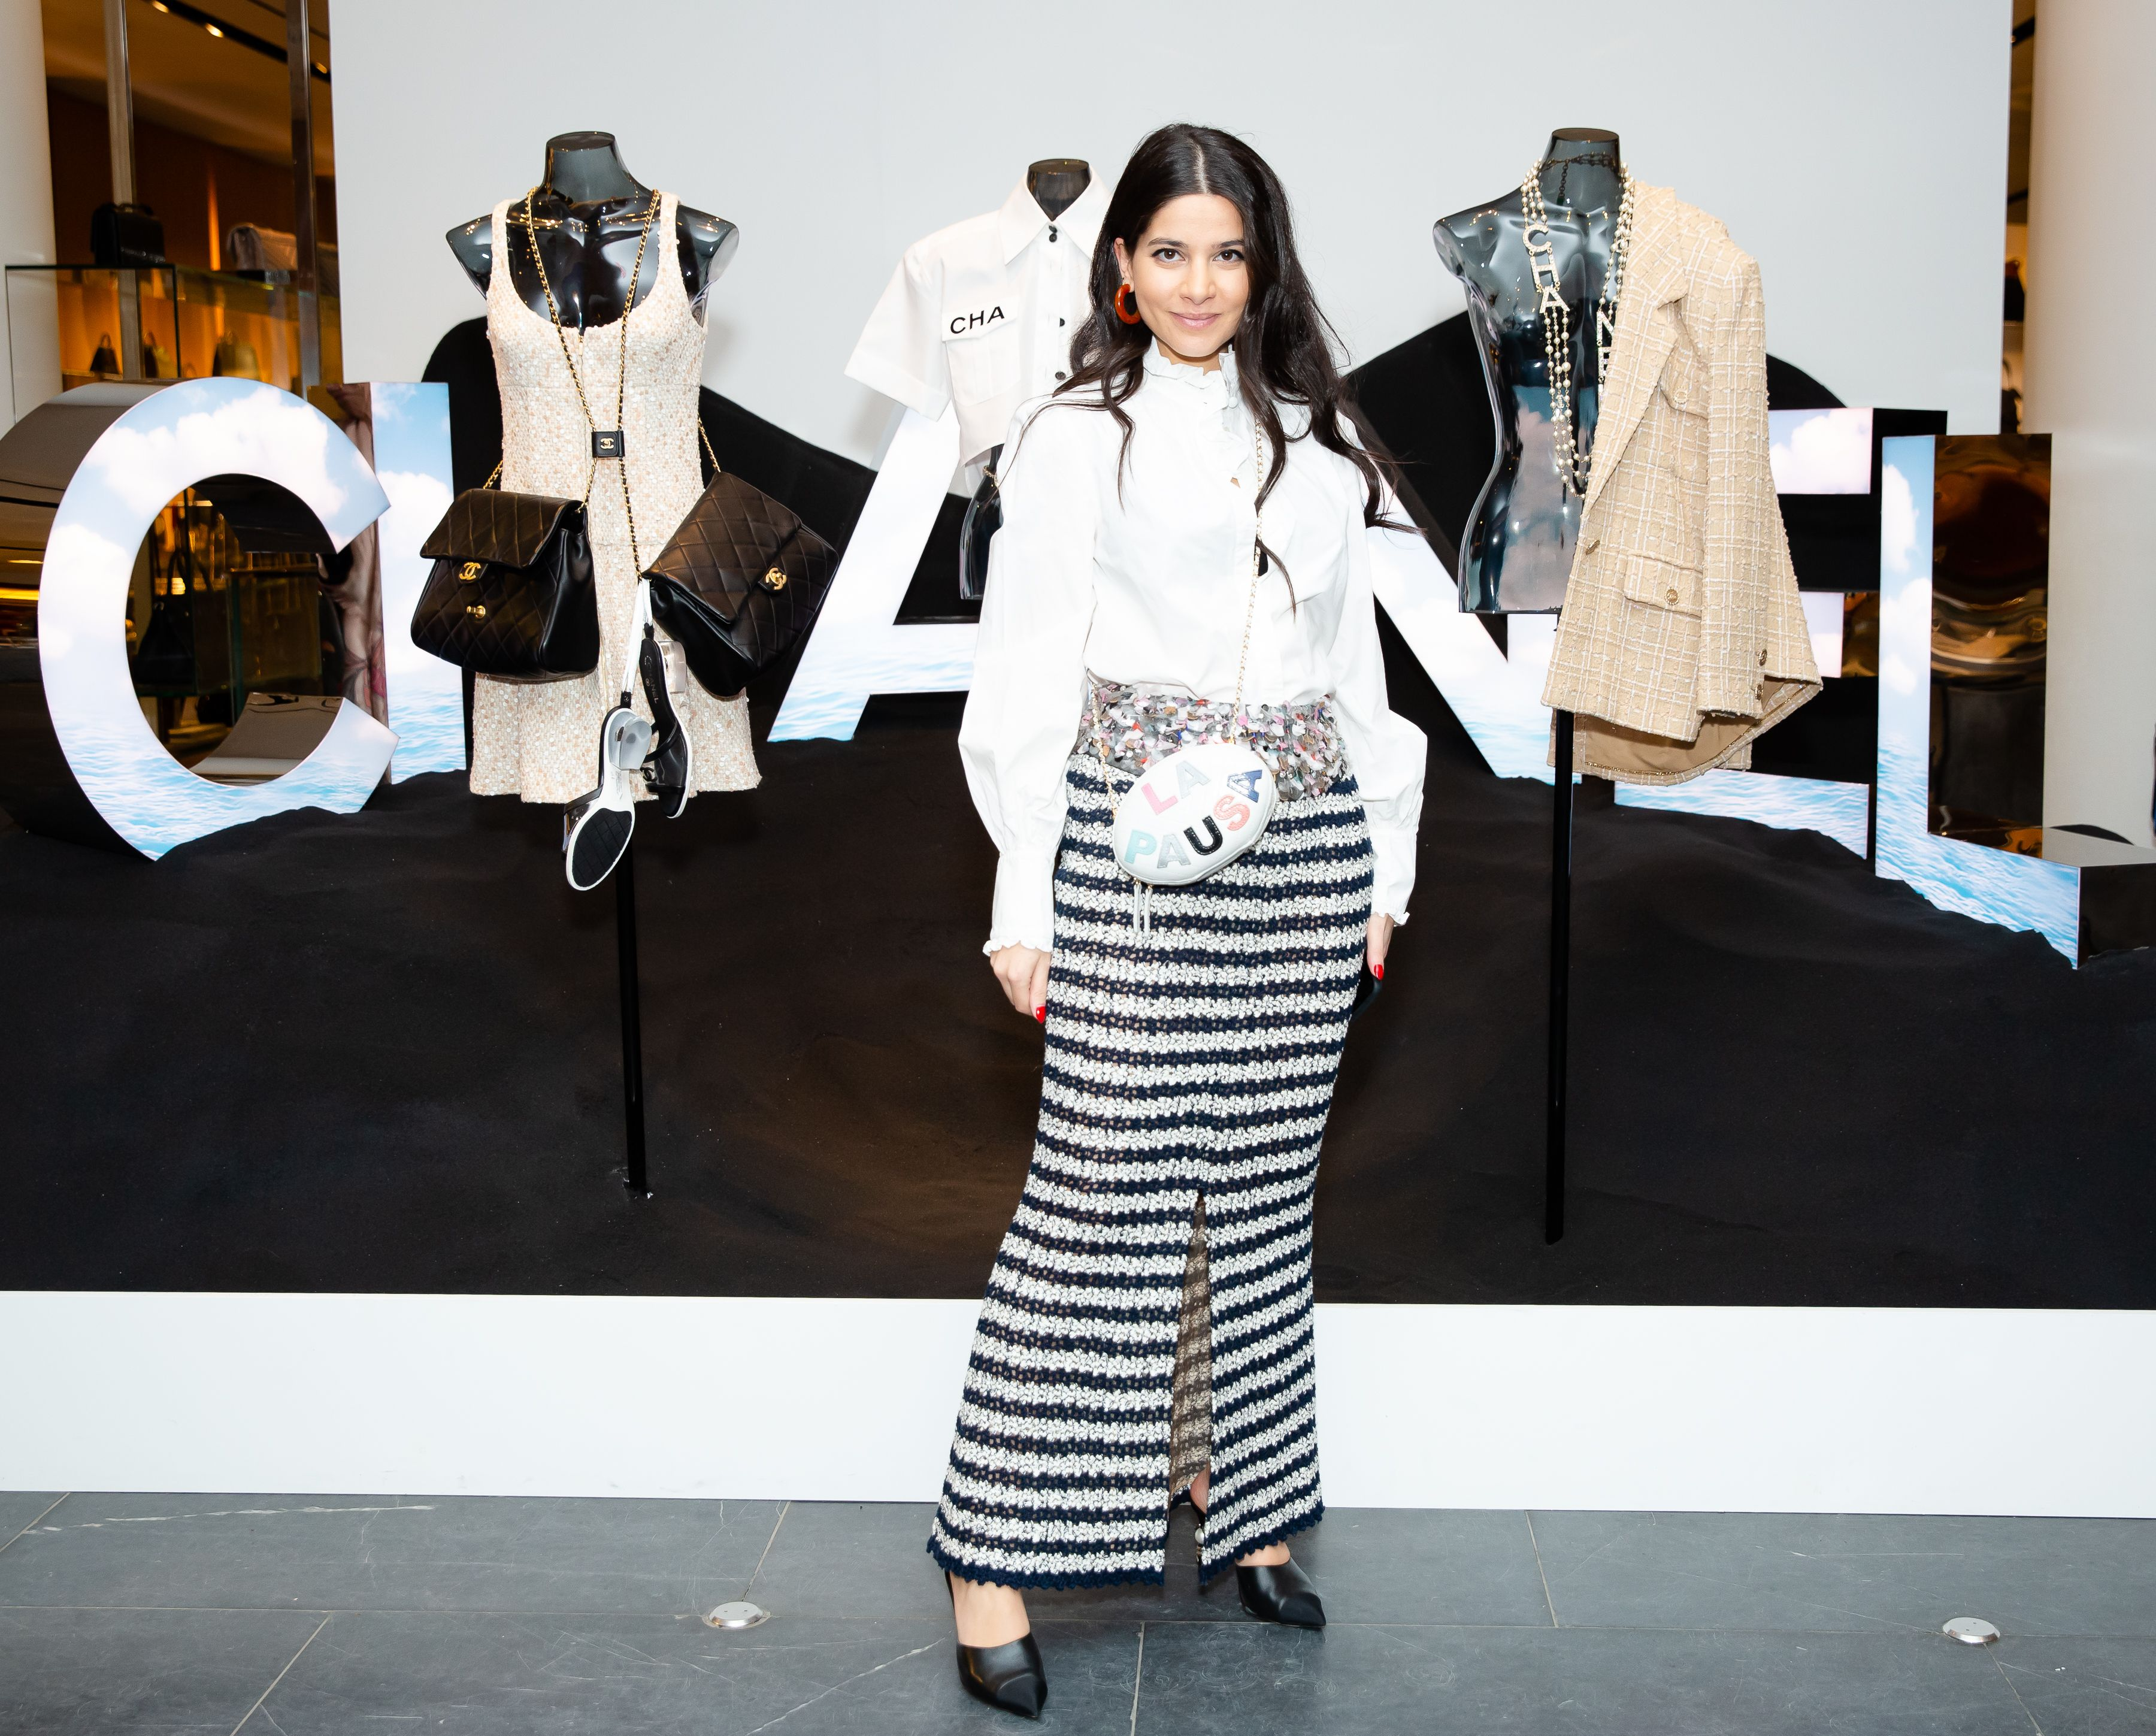 Lainy Hedaya Lainy Hedaya attends the cocktail and dinner party to celebrate the opening of Chanel's new boutique at Barneys New York on April 3.